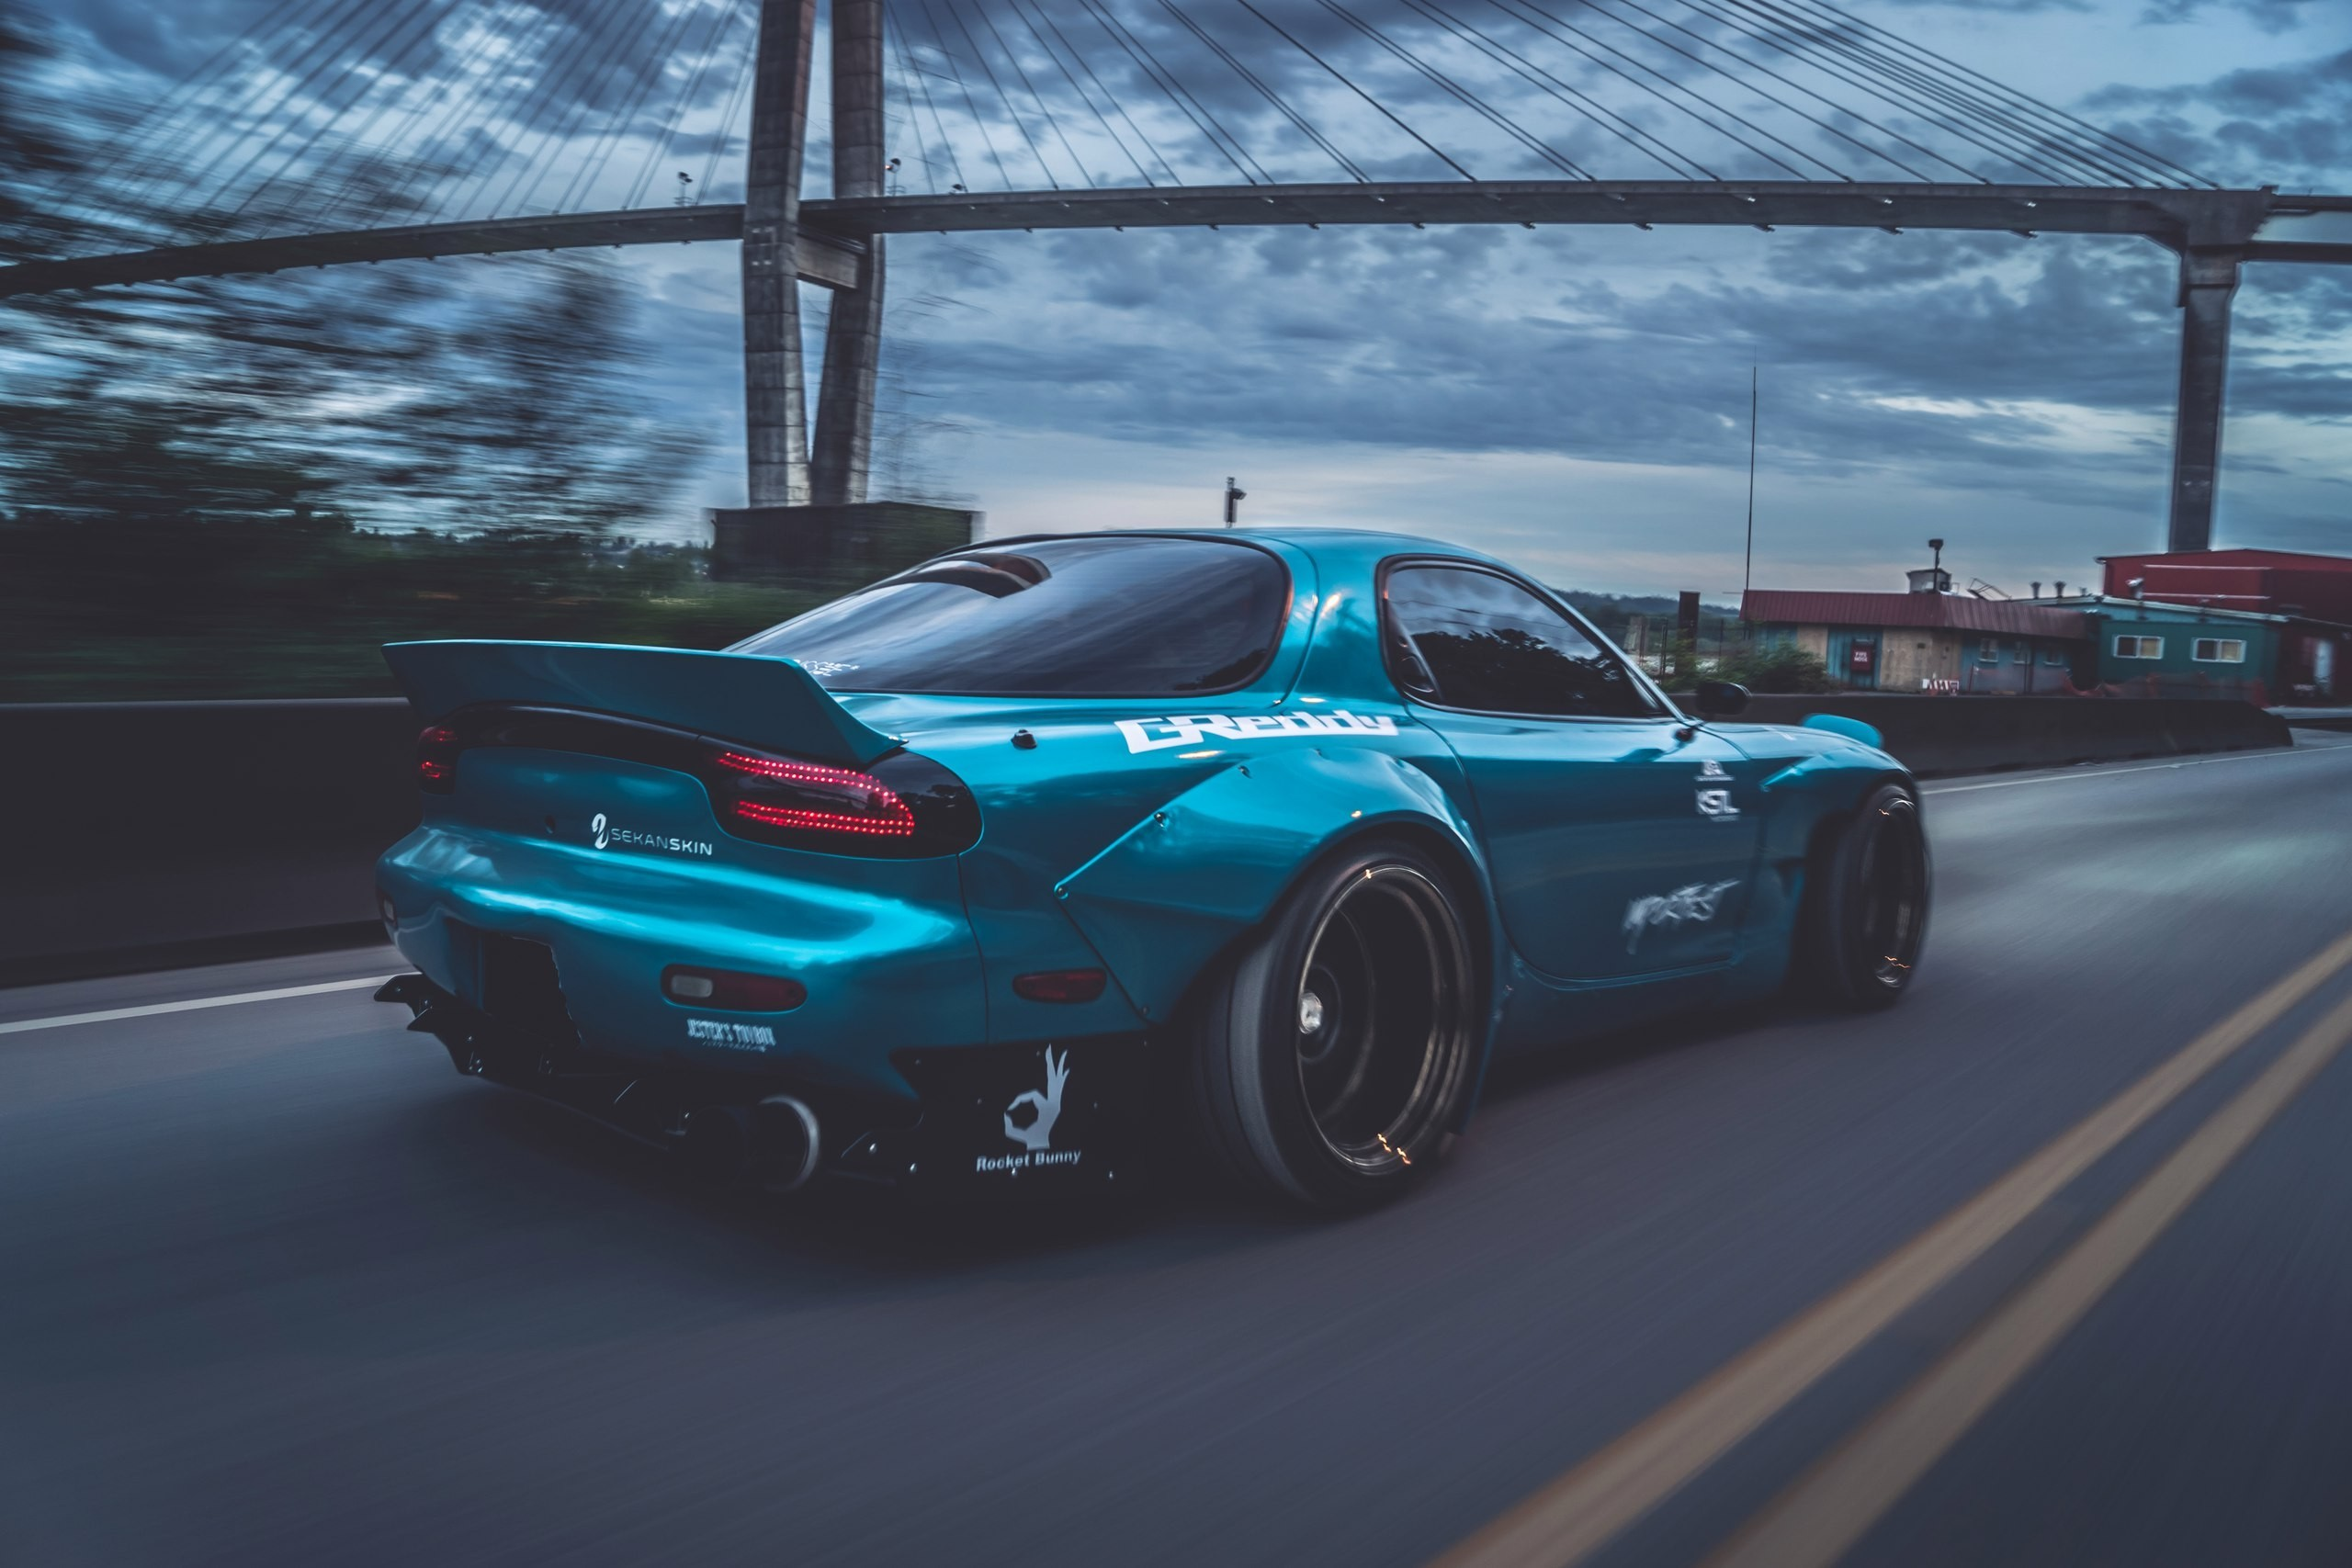 2560x1707  sports car Mazda RX-7 Mazda blue cars bridge Rocket Bunny